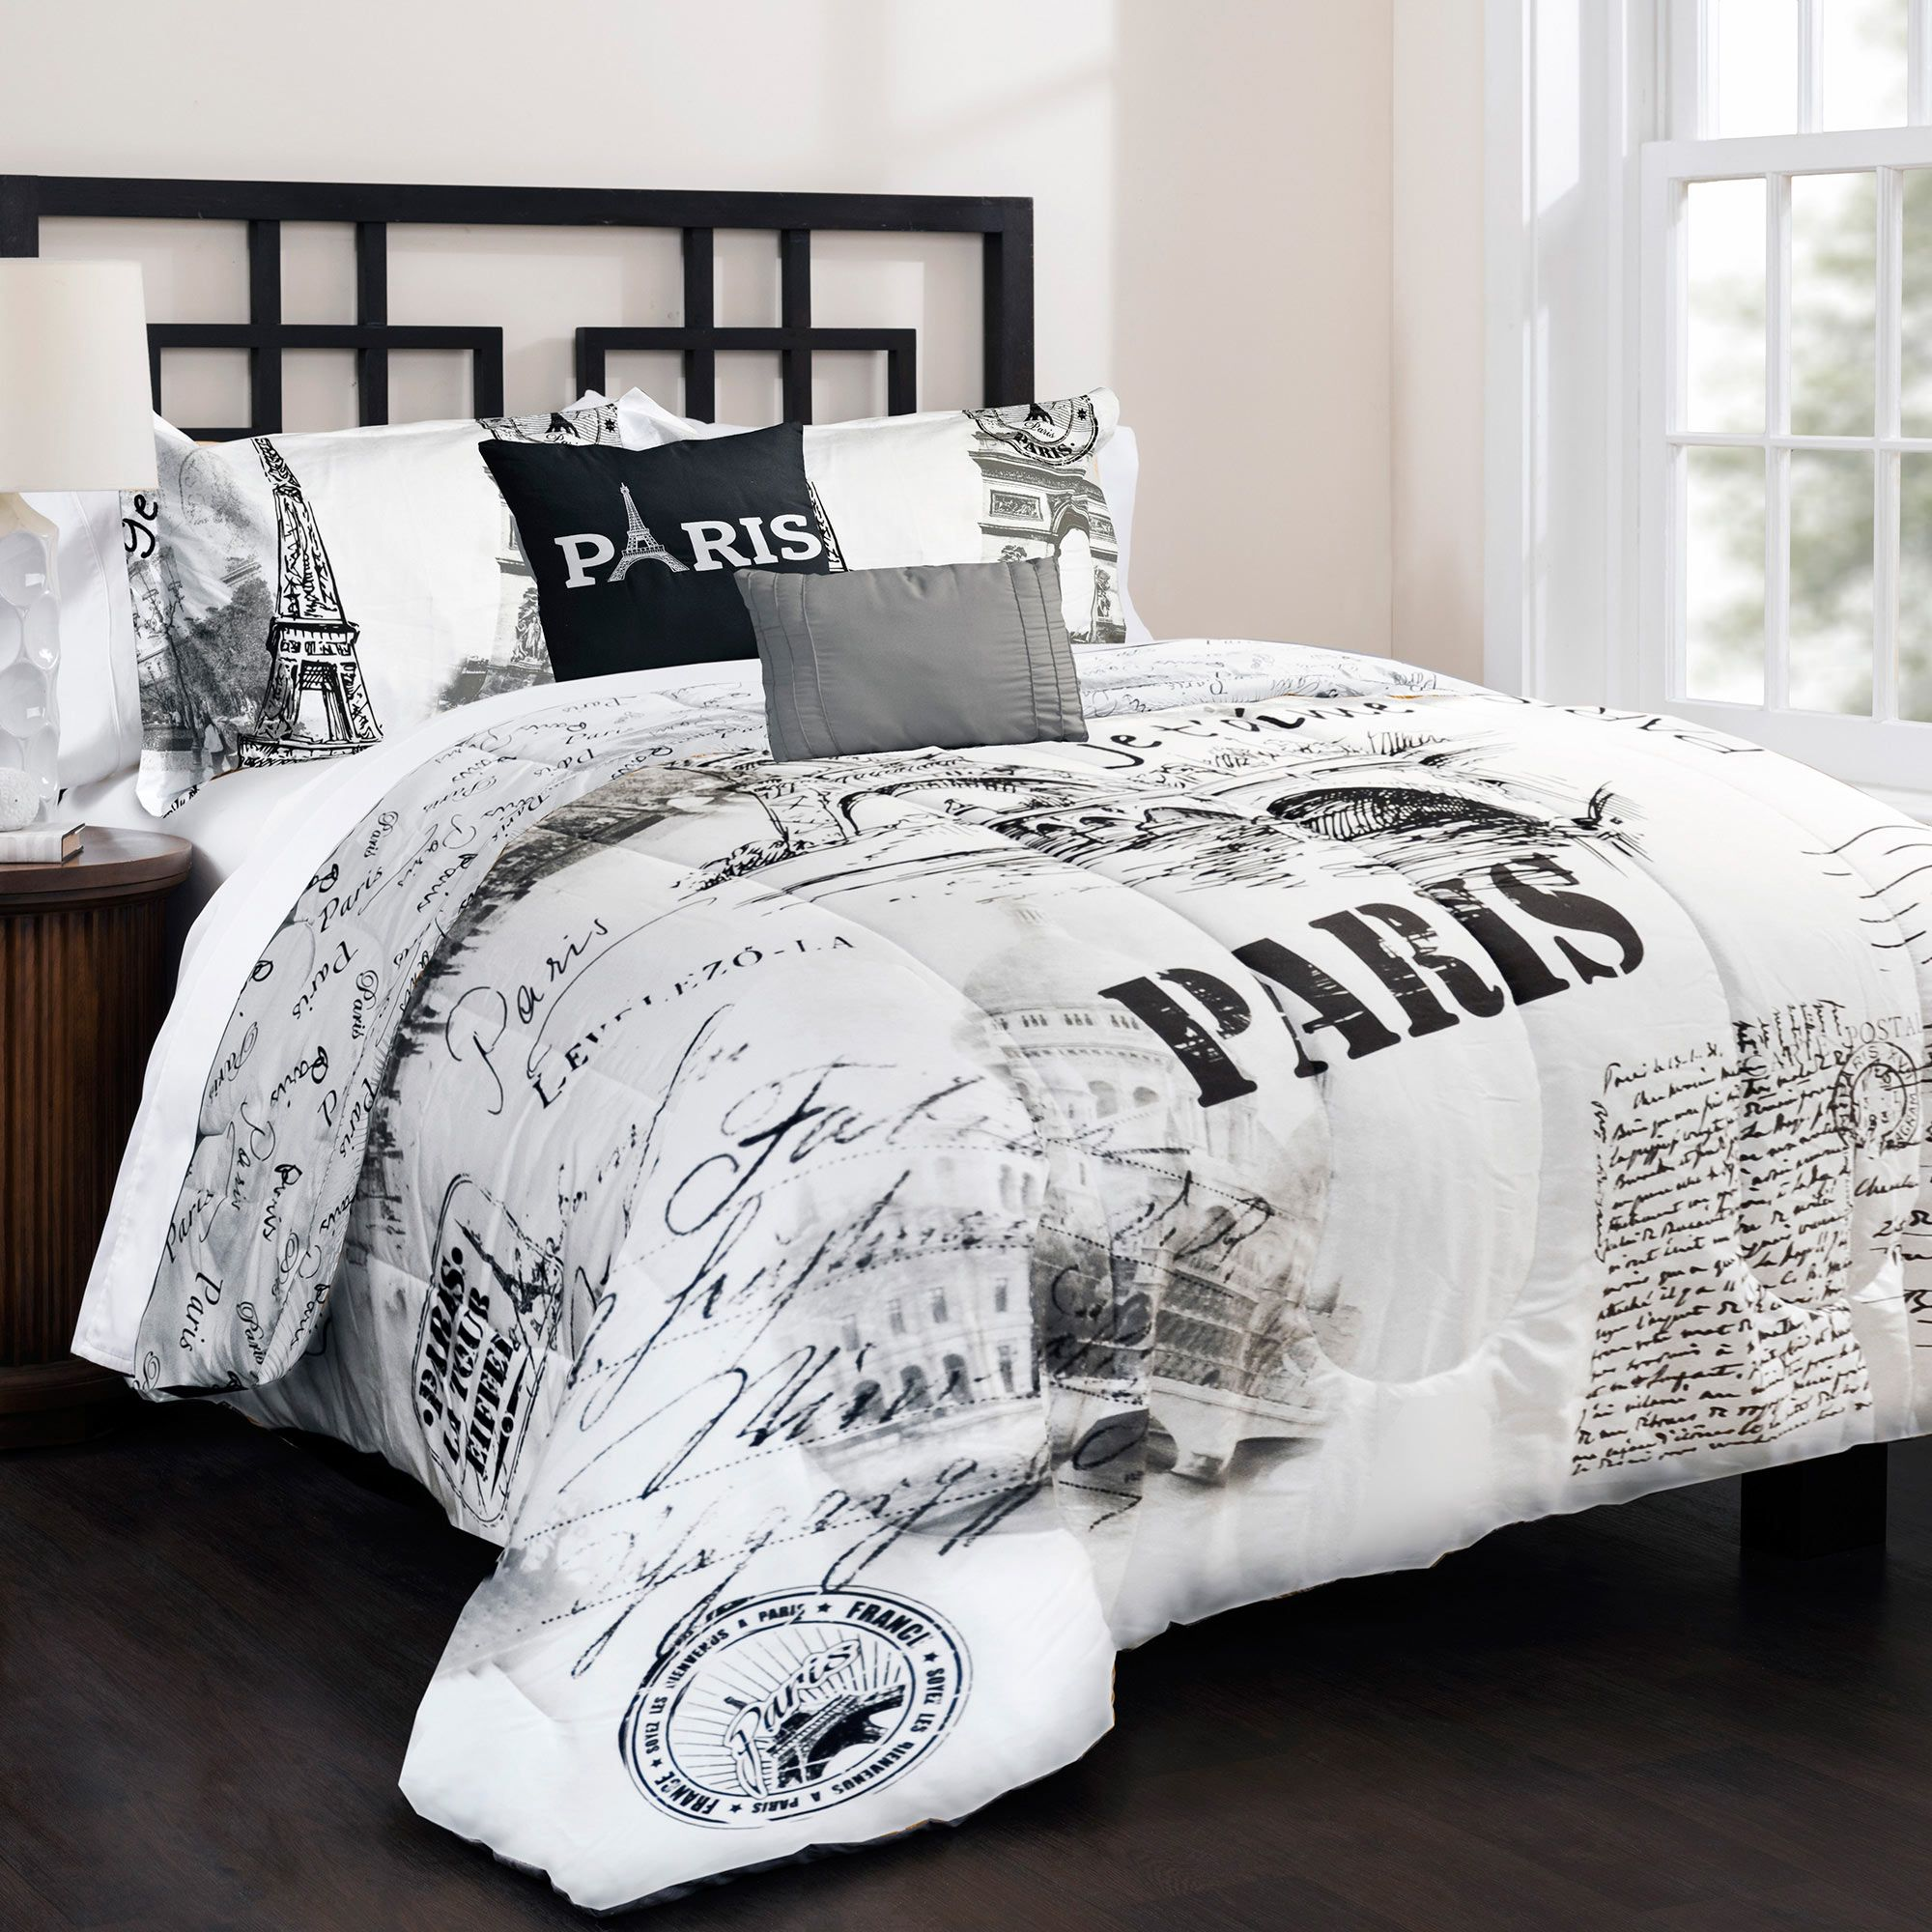 Eiffelturm Bettwäsche 3 Piece Paris Comforter Set Black White In Color Haizen